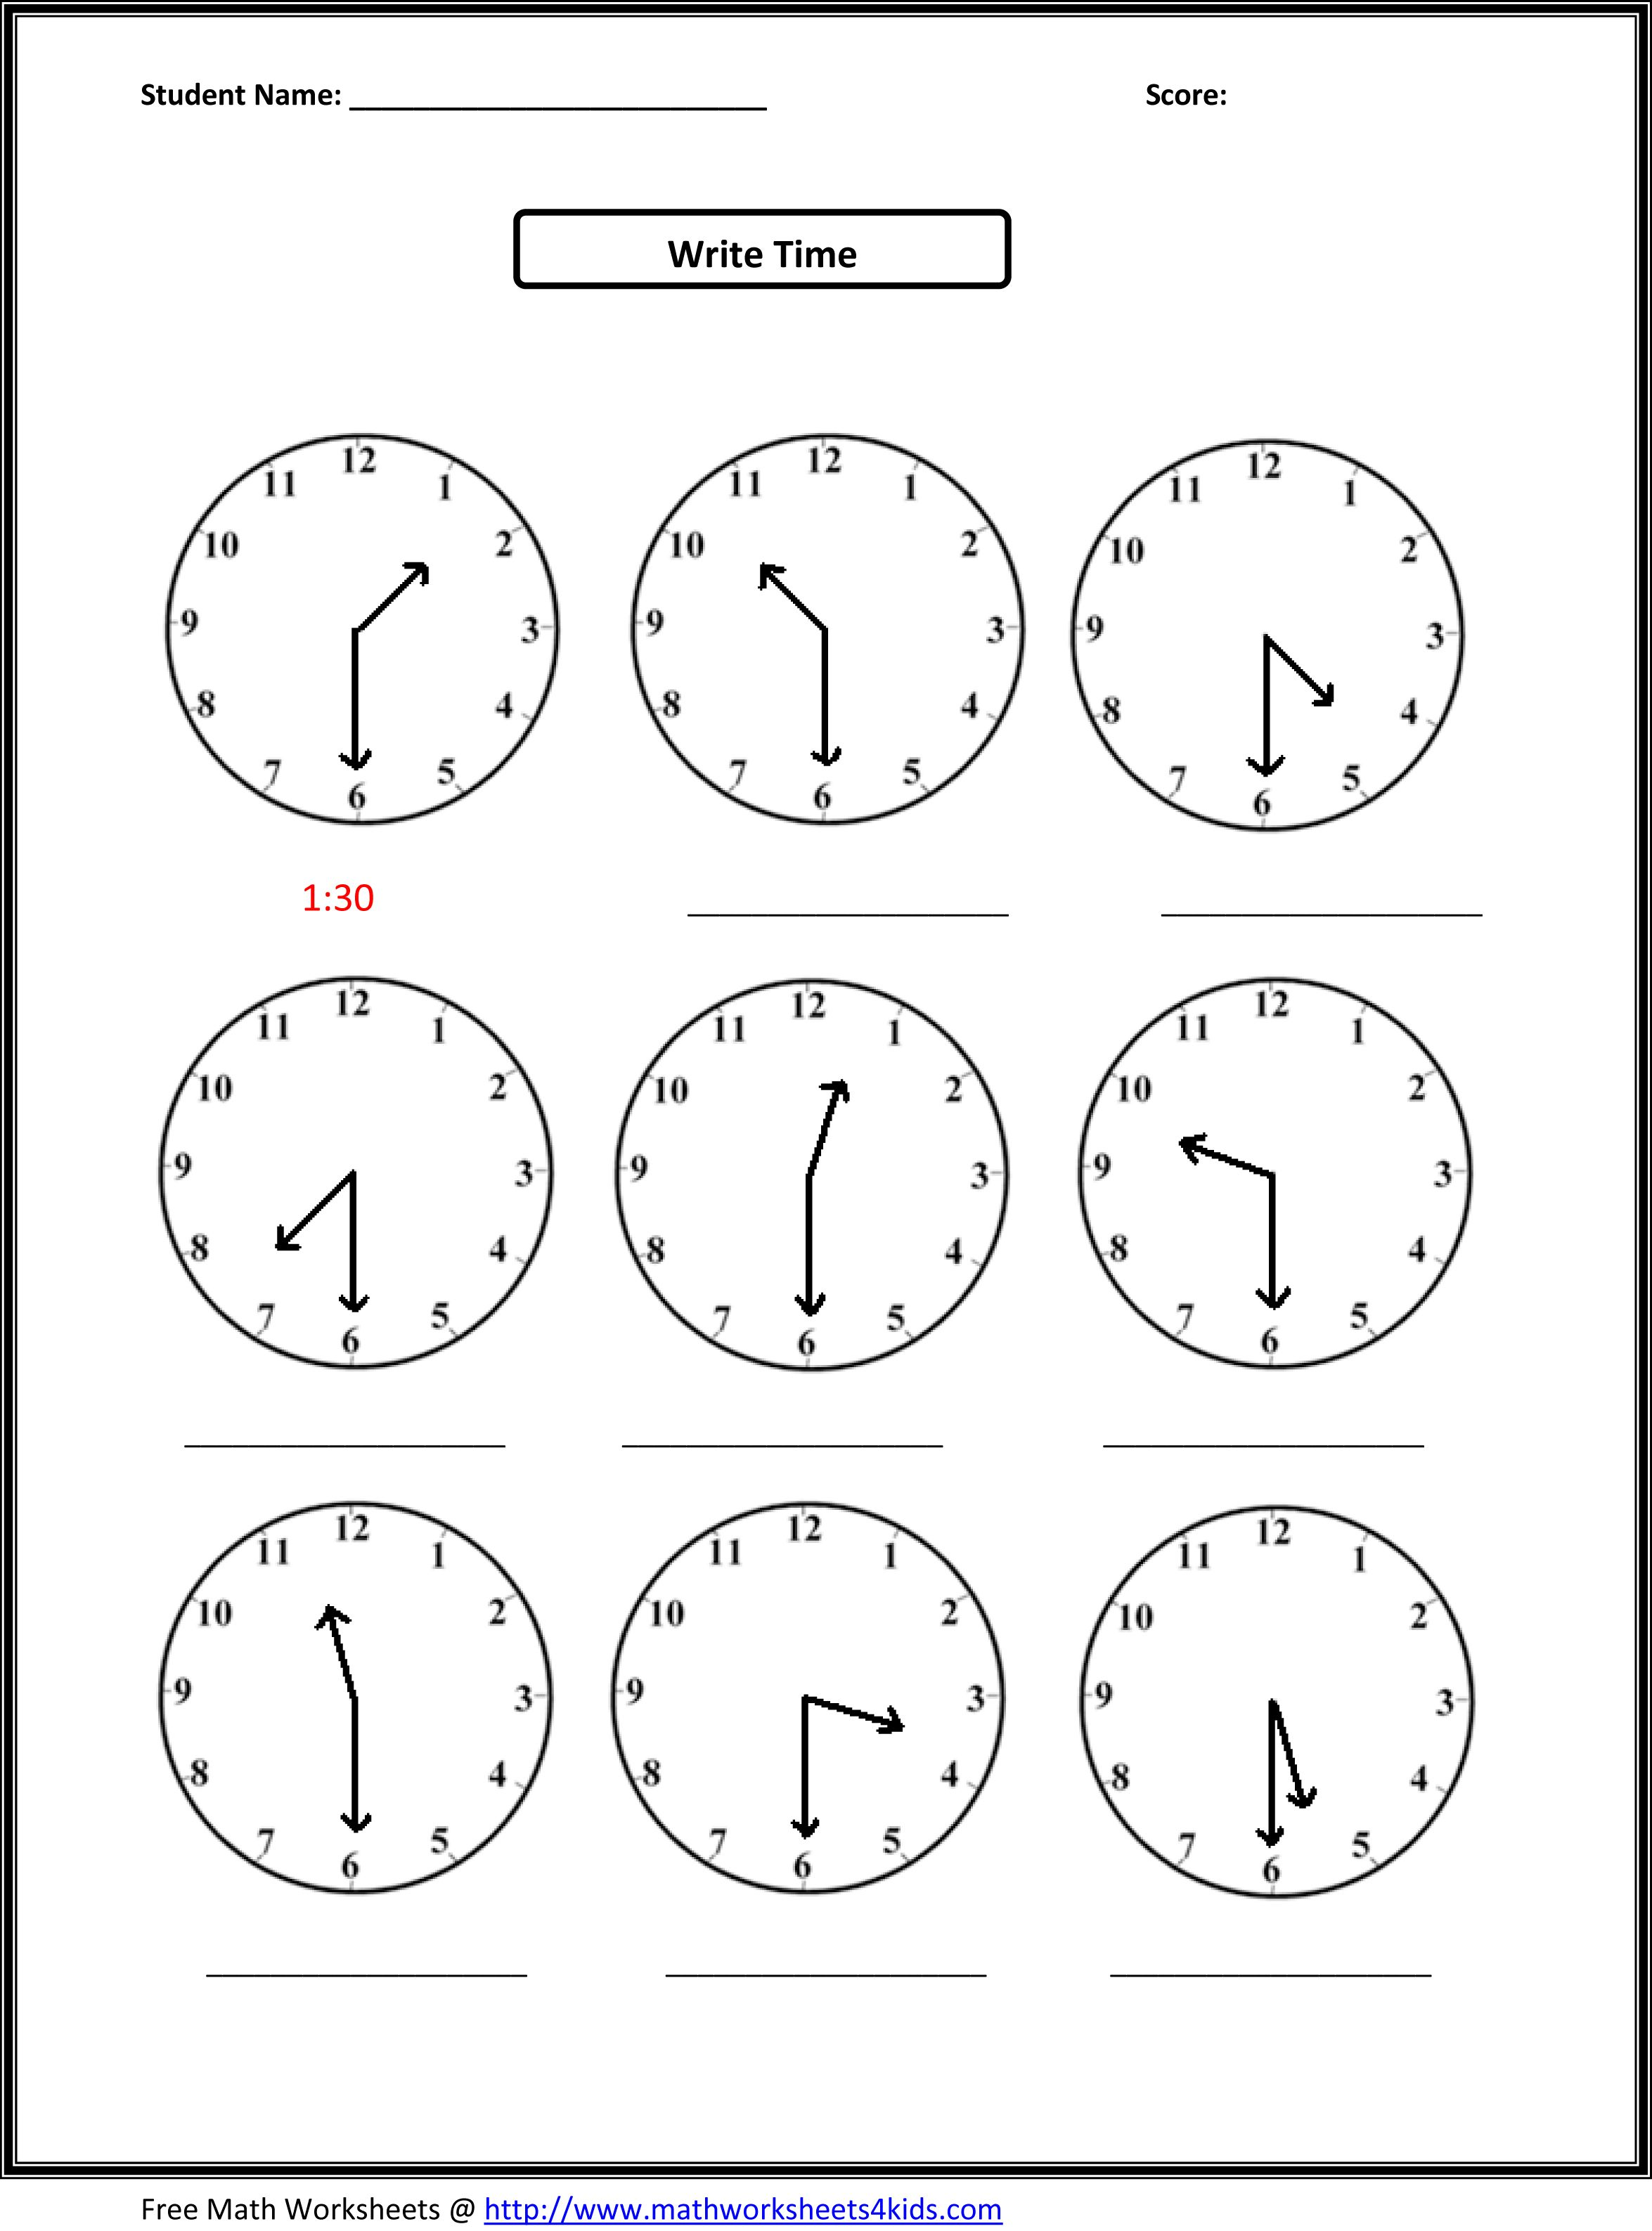 Proatmealus  Winsome Worksheet On Time For Grade   Reocurent With Glamorous Free Printable Telling Time Worksheets Nd Grade  Reocurent With Agreeable Ice Breaker Worksheet Also Free Printable Math Worksheets For Preschoolers In Addition Kids Bible Worksheets And Math Percent Worksheets As Well As My Brother Sam Is Dead Worksheets Additionally Fraction Worksheets For Second Grade From Reocurentcom With Proatmealus  Glamorous Worksheet On Time For Grade   Reocurent With Agreeable Free Printable Telling Time Worksheets Nd Grade  Reocurent And Winsome Ice Breaker Worksheet Also Free Printable Math Worksheets For Preschoolers In Addition Kids Bible Worksheets From Reocurentcom